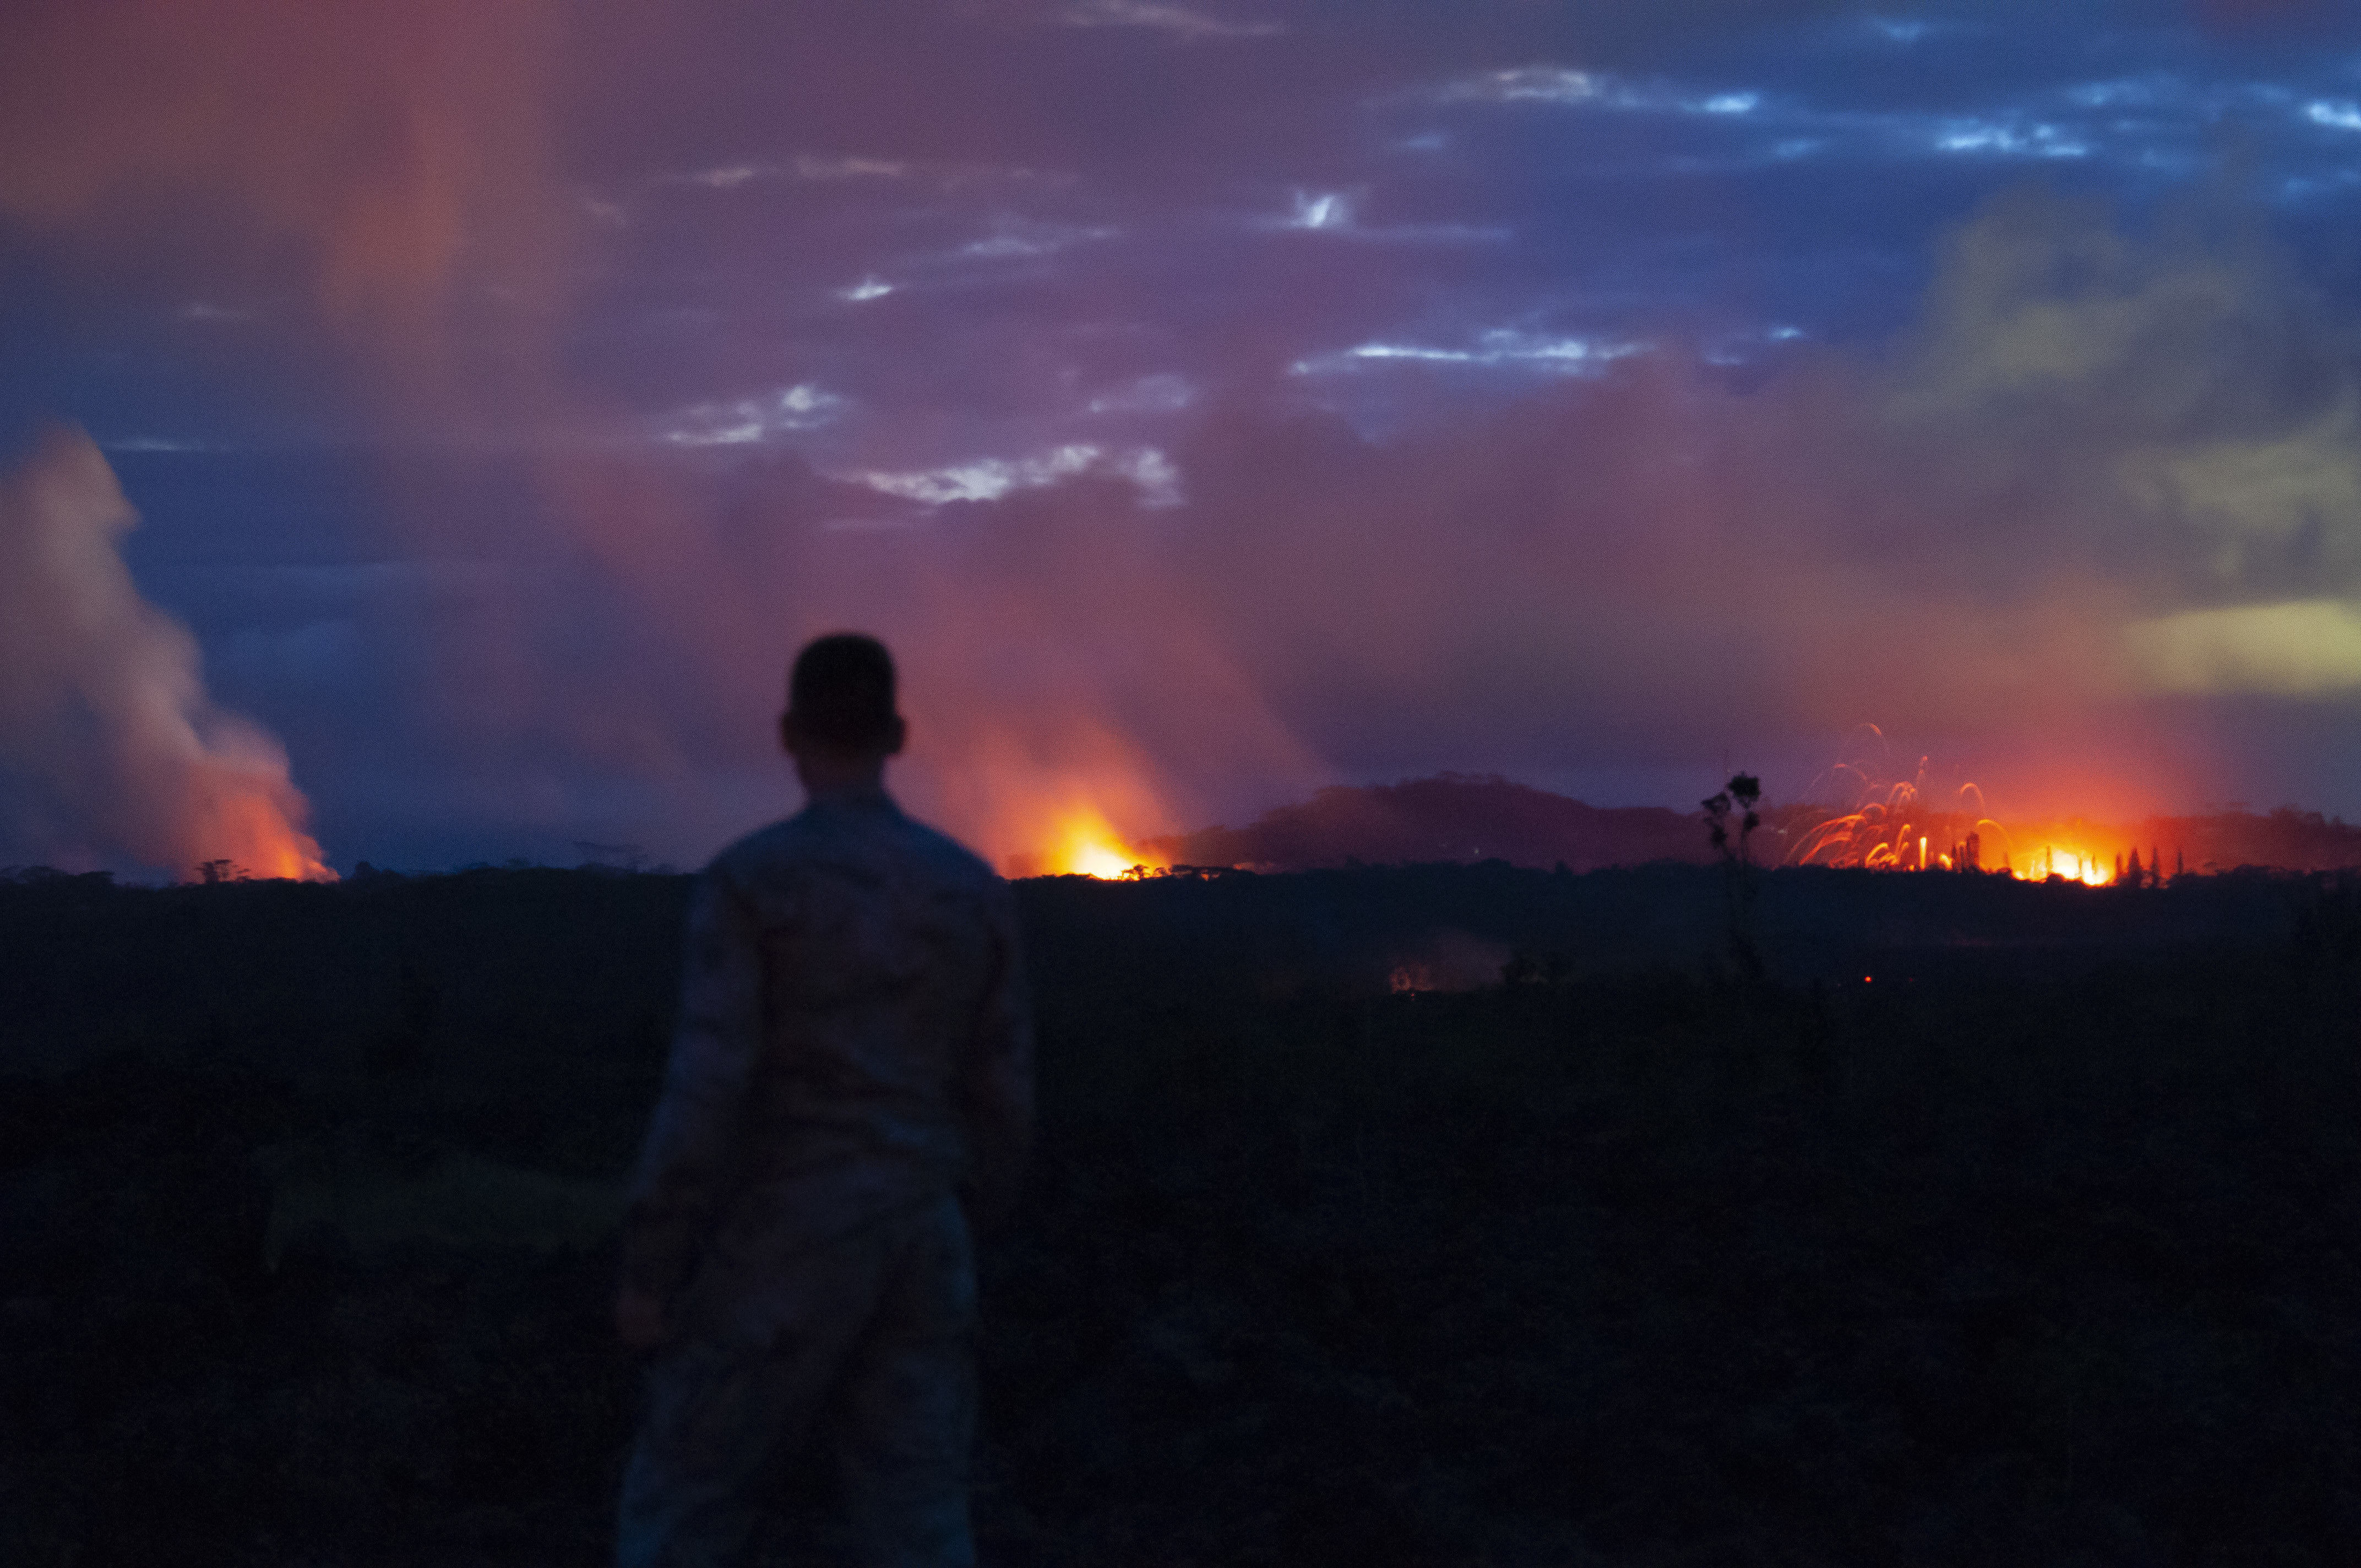 A member of the Hawaii Air National Guard observes three lava fissures